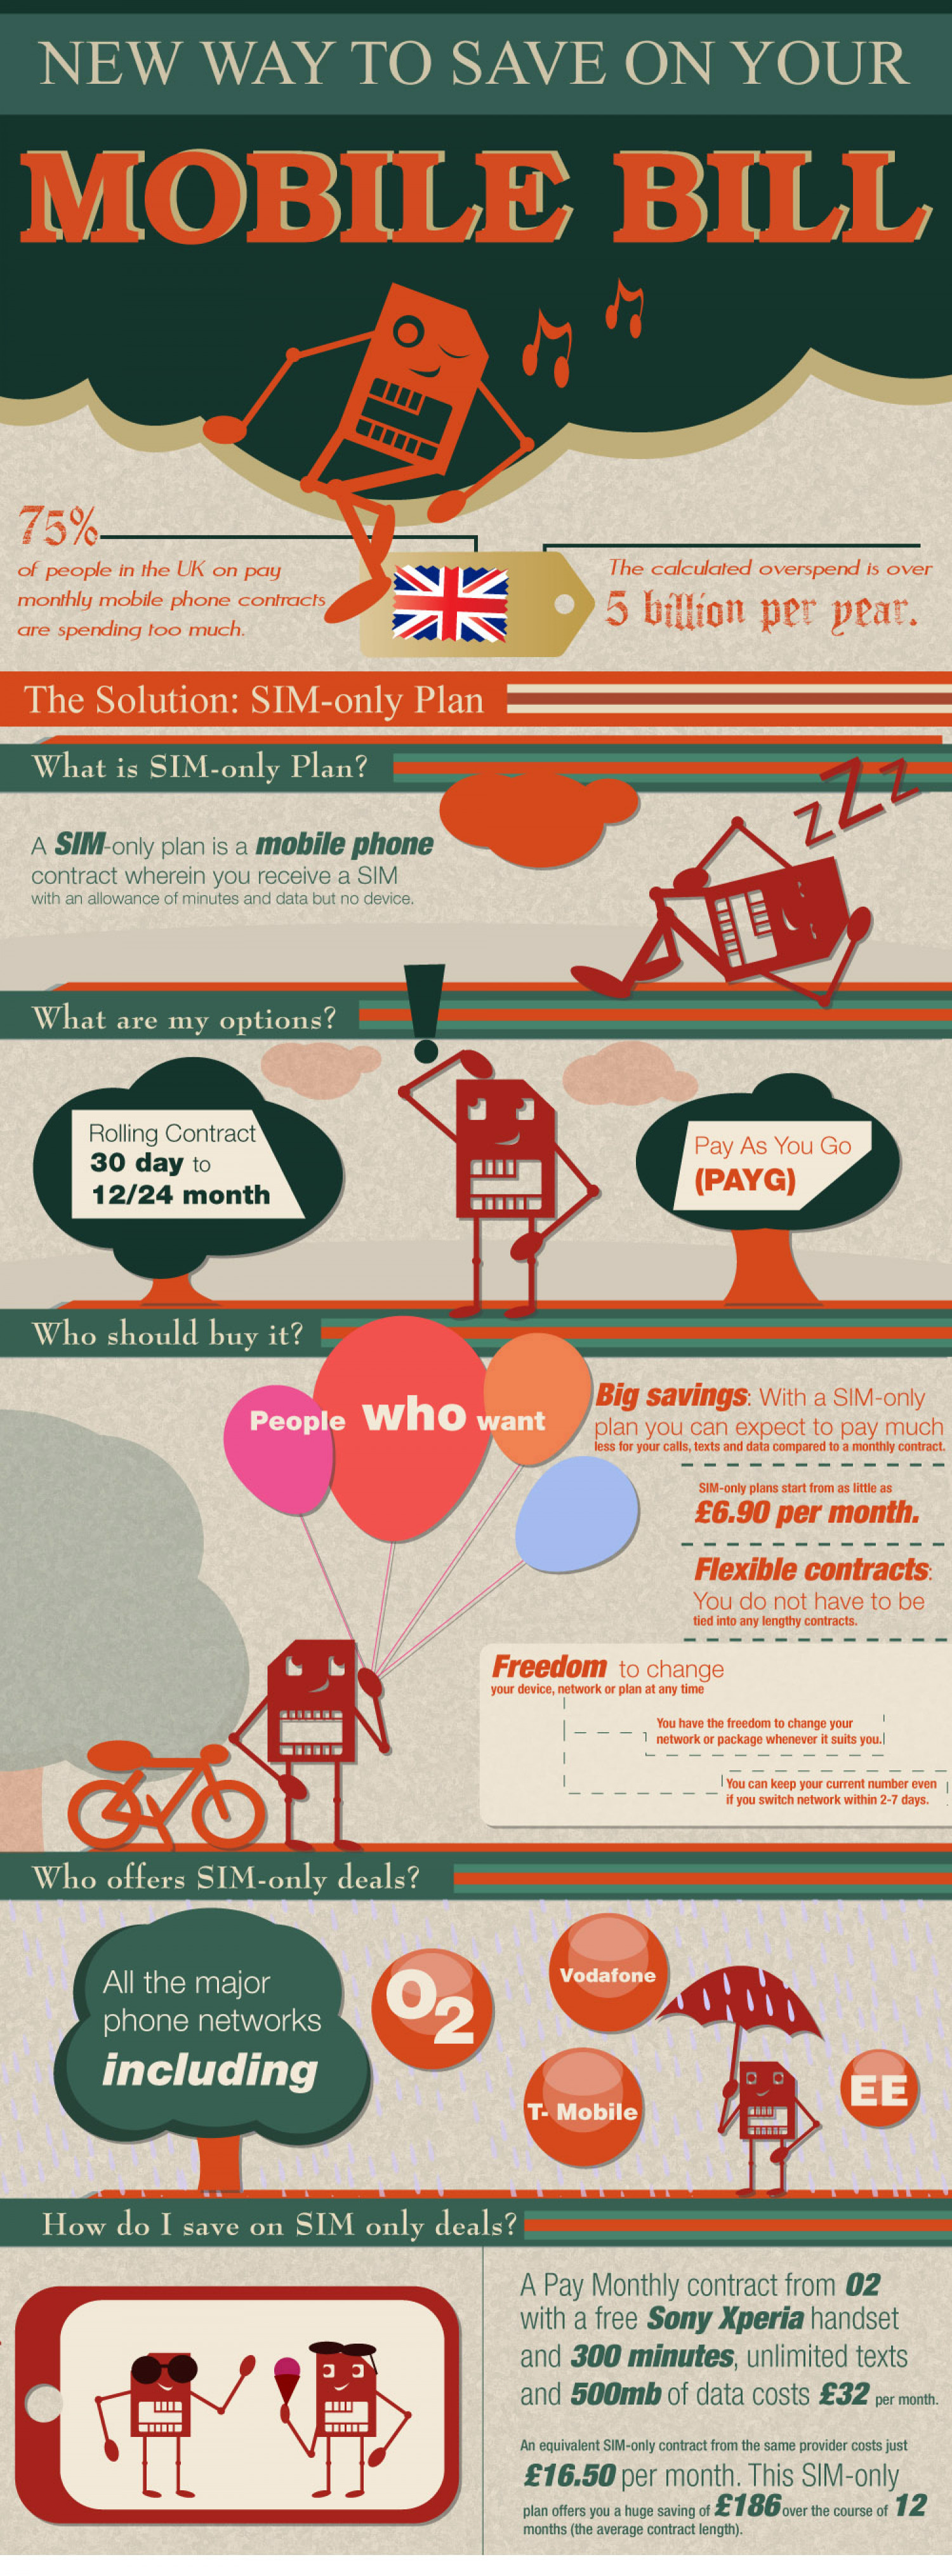 New Way to Save on Your Mobile Bill Infographic